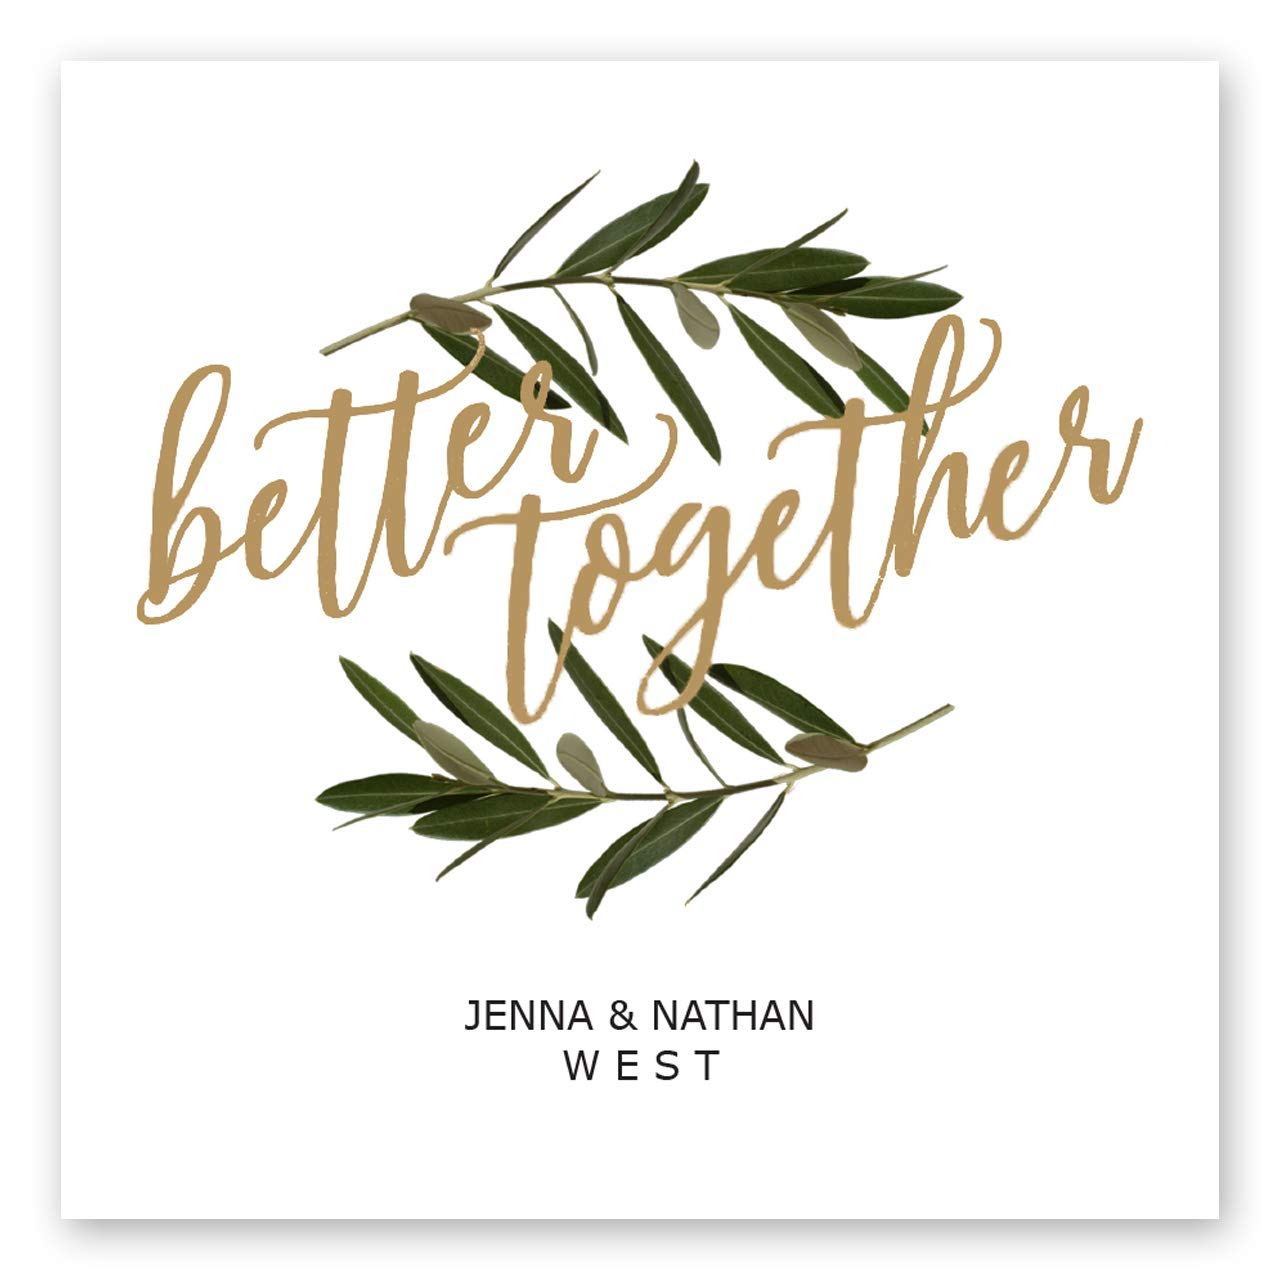 Better Together Personalized Luncheon Napkin - 100 Custom Printed White Uncoined Napkins. 6 1/2'' x 6 1/2'' folded. Made in the USA by Canopy Street